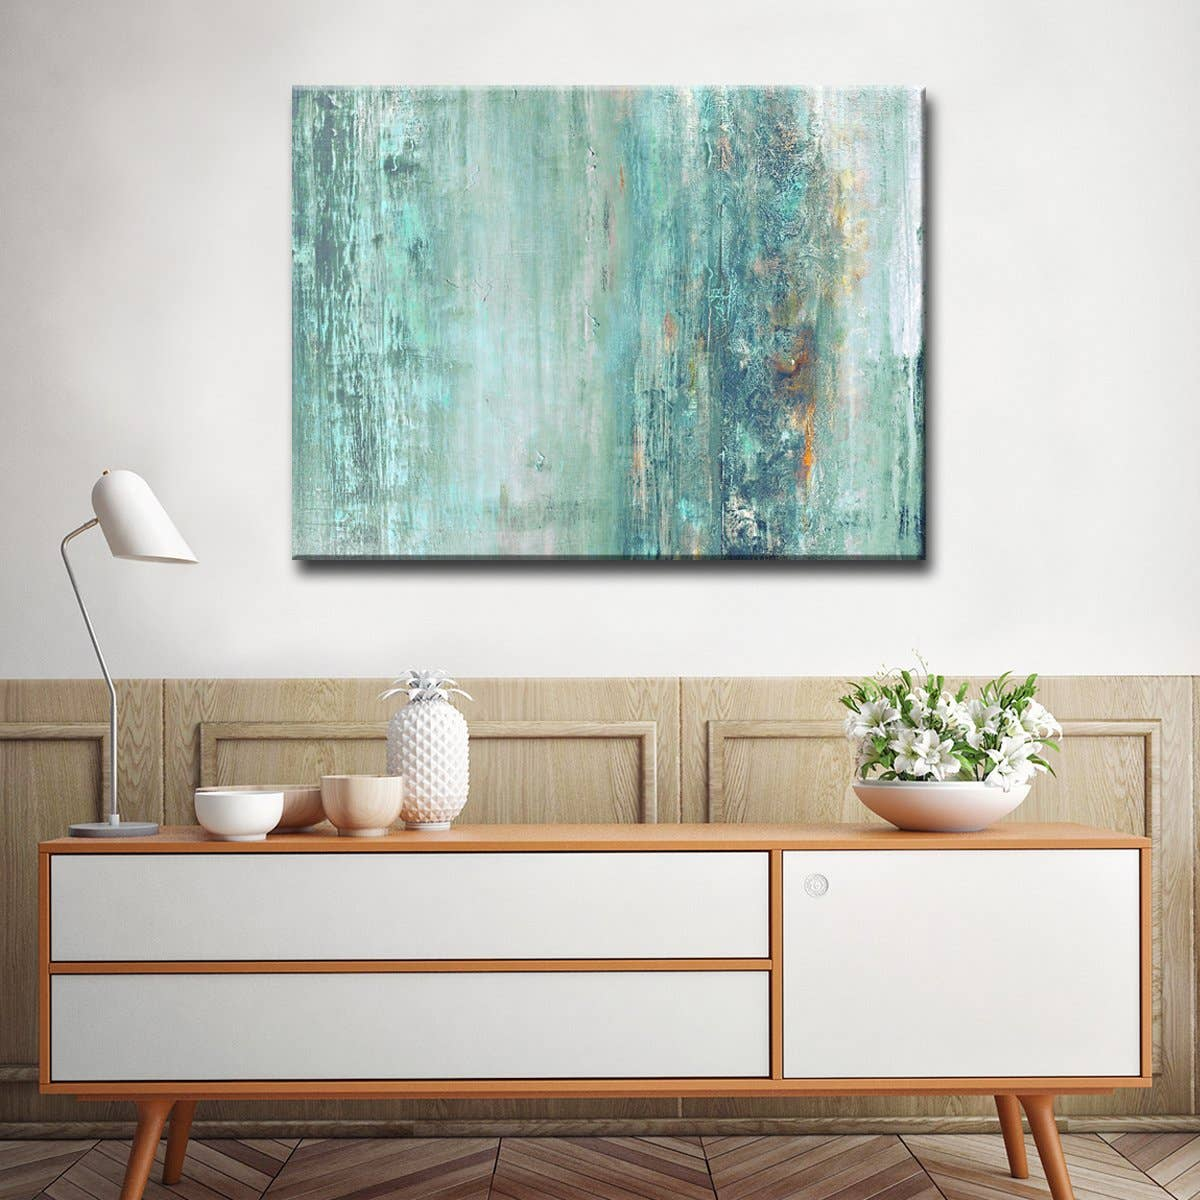 'Abstract Spa' Gallery Wrapped Canvas